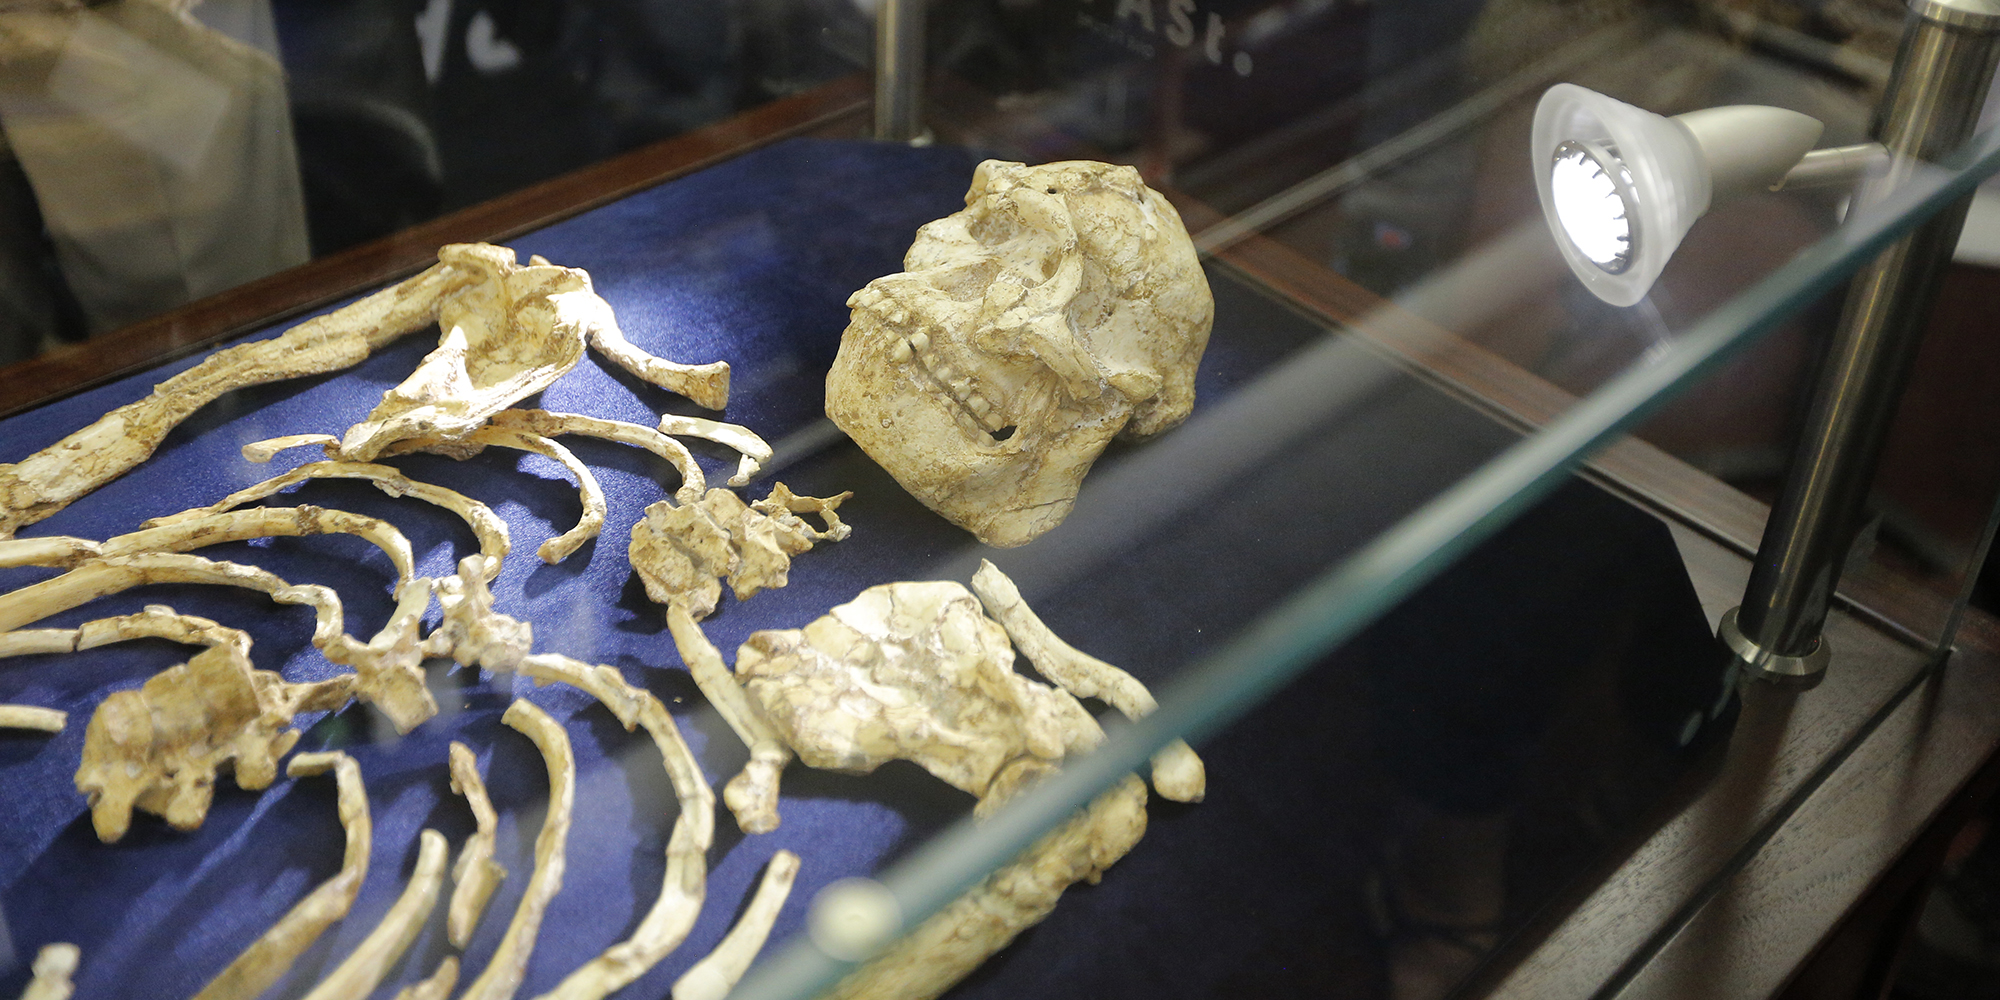 Something to chew over: Scientists get into the skull of 3.6 million-year-old Little Foot - Daily Maverick